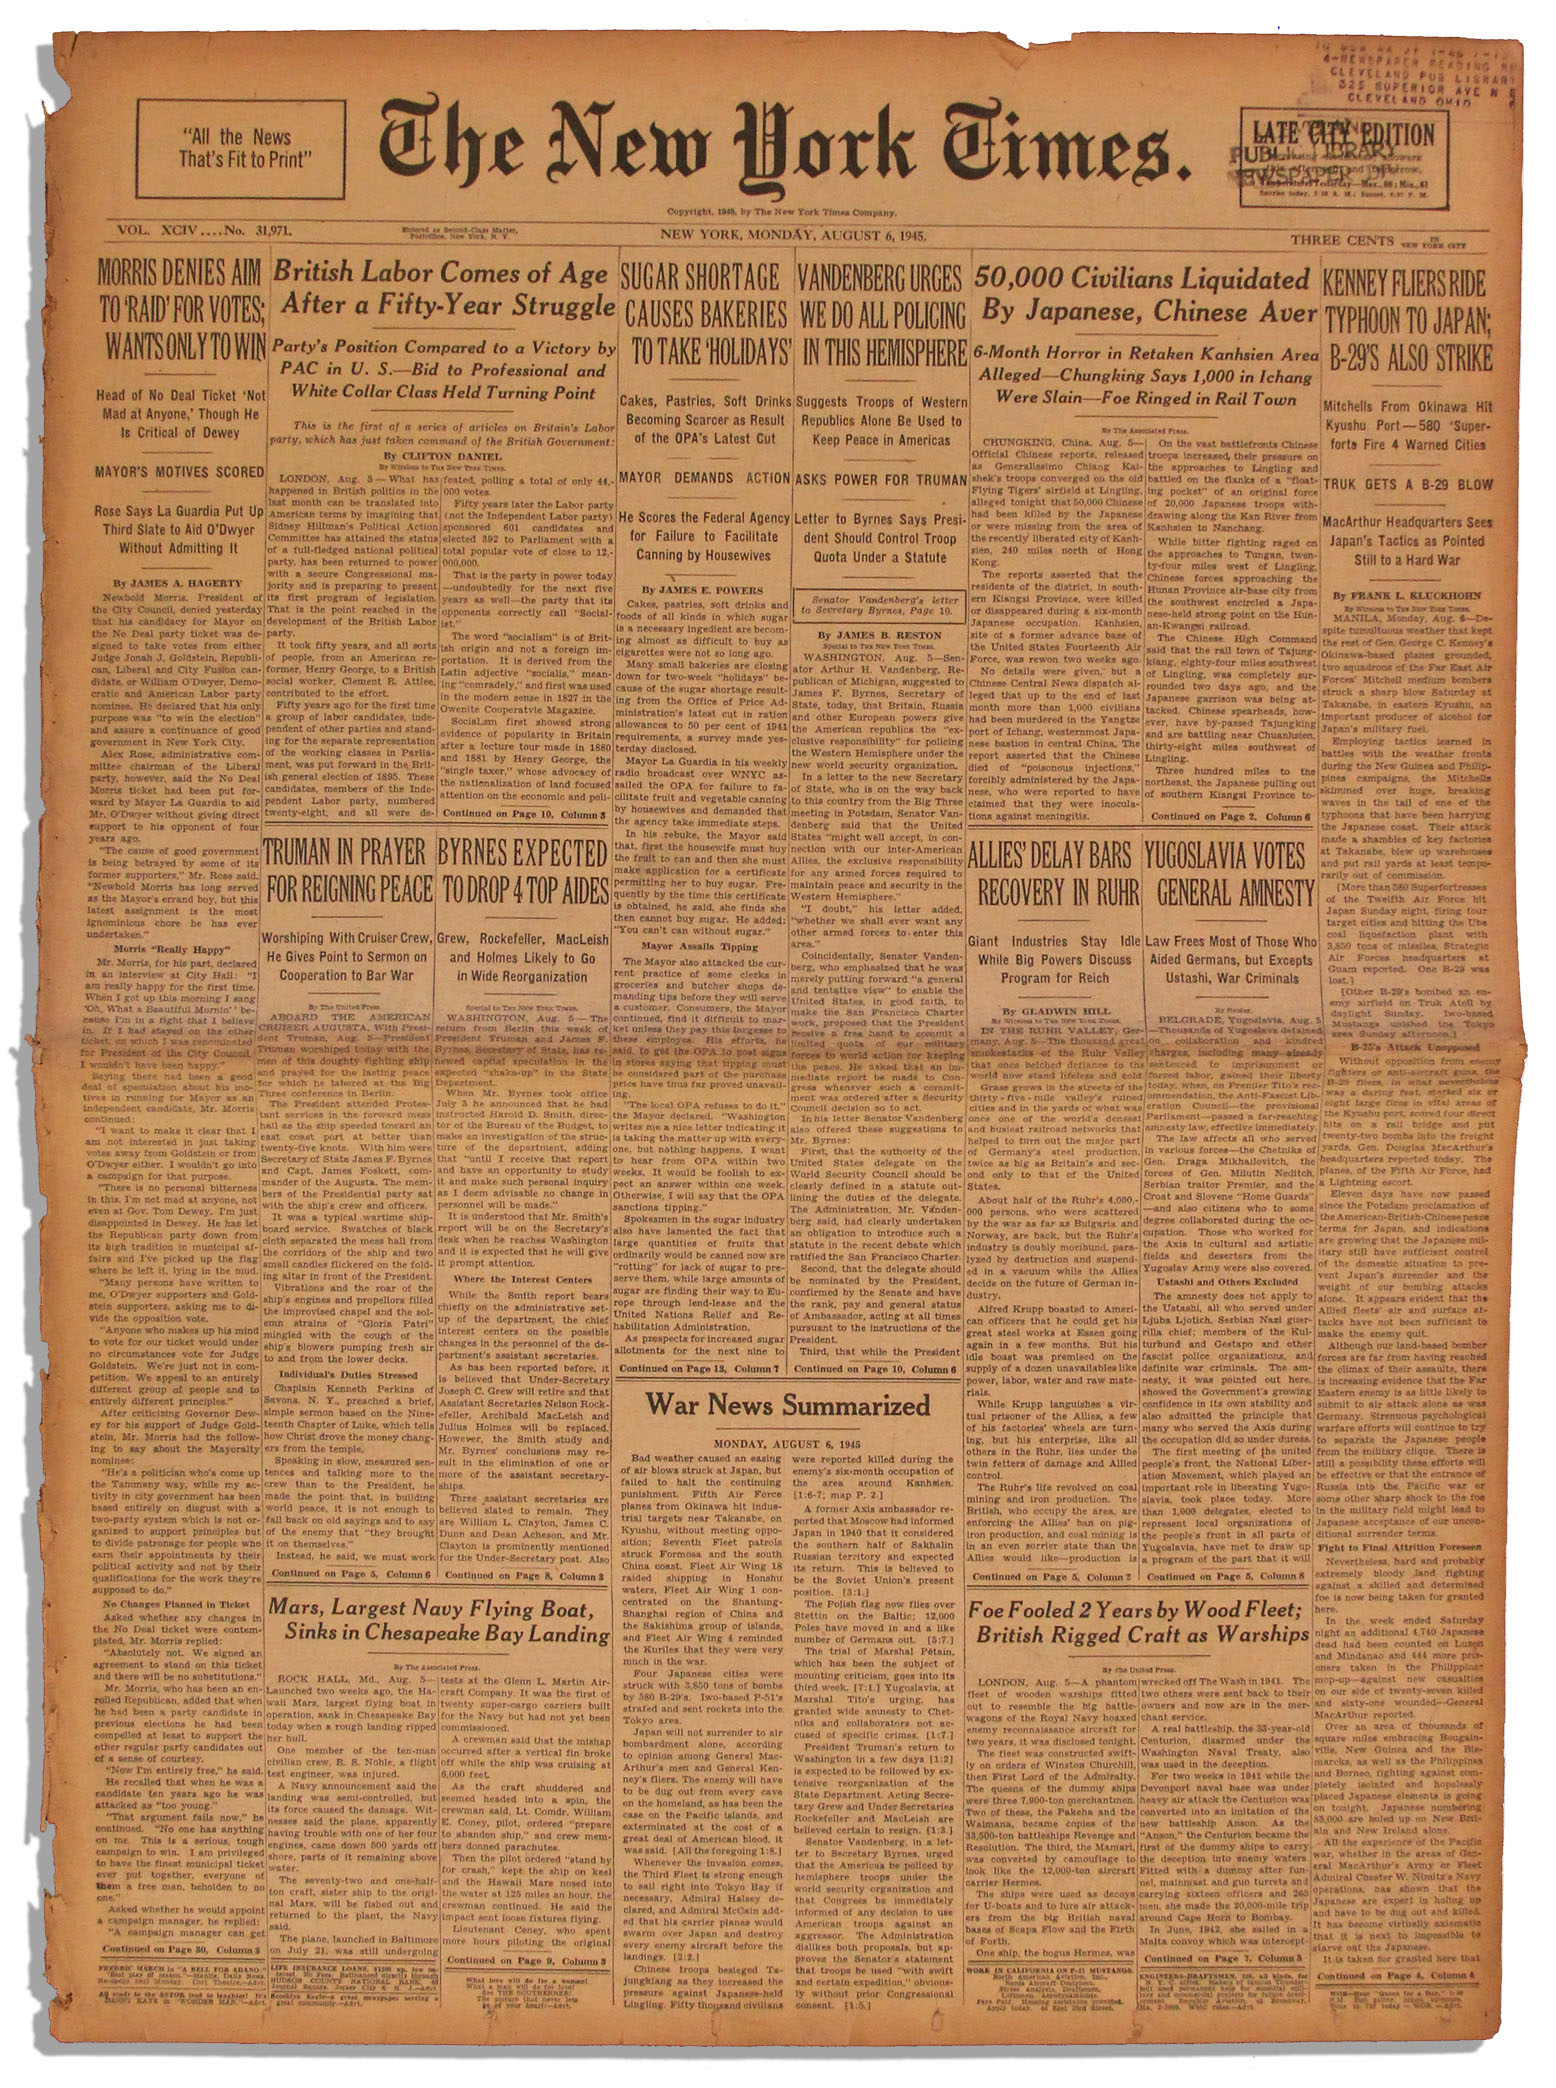 WWII ''New York Times'' Newspaper From 6 August 1945 -- The